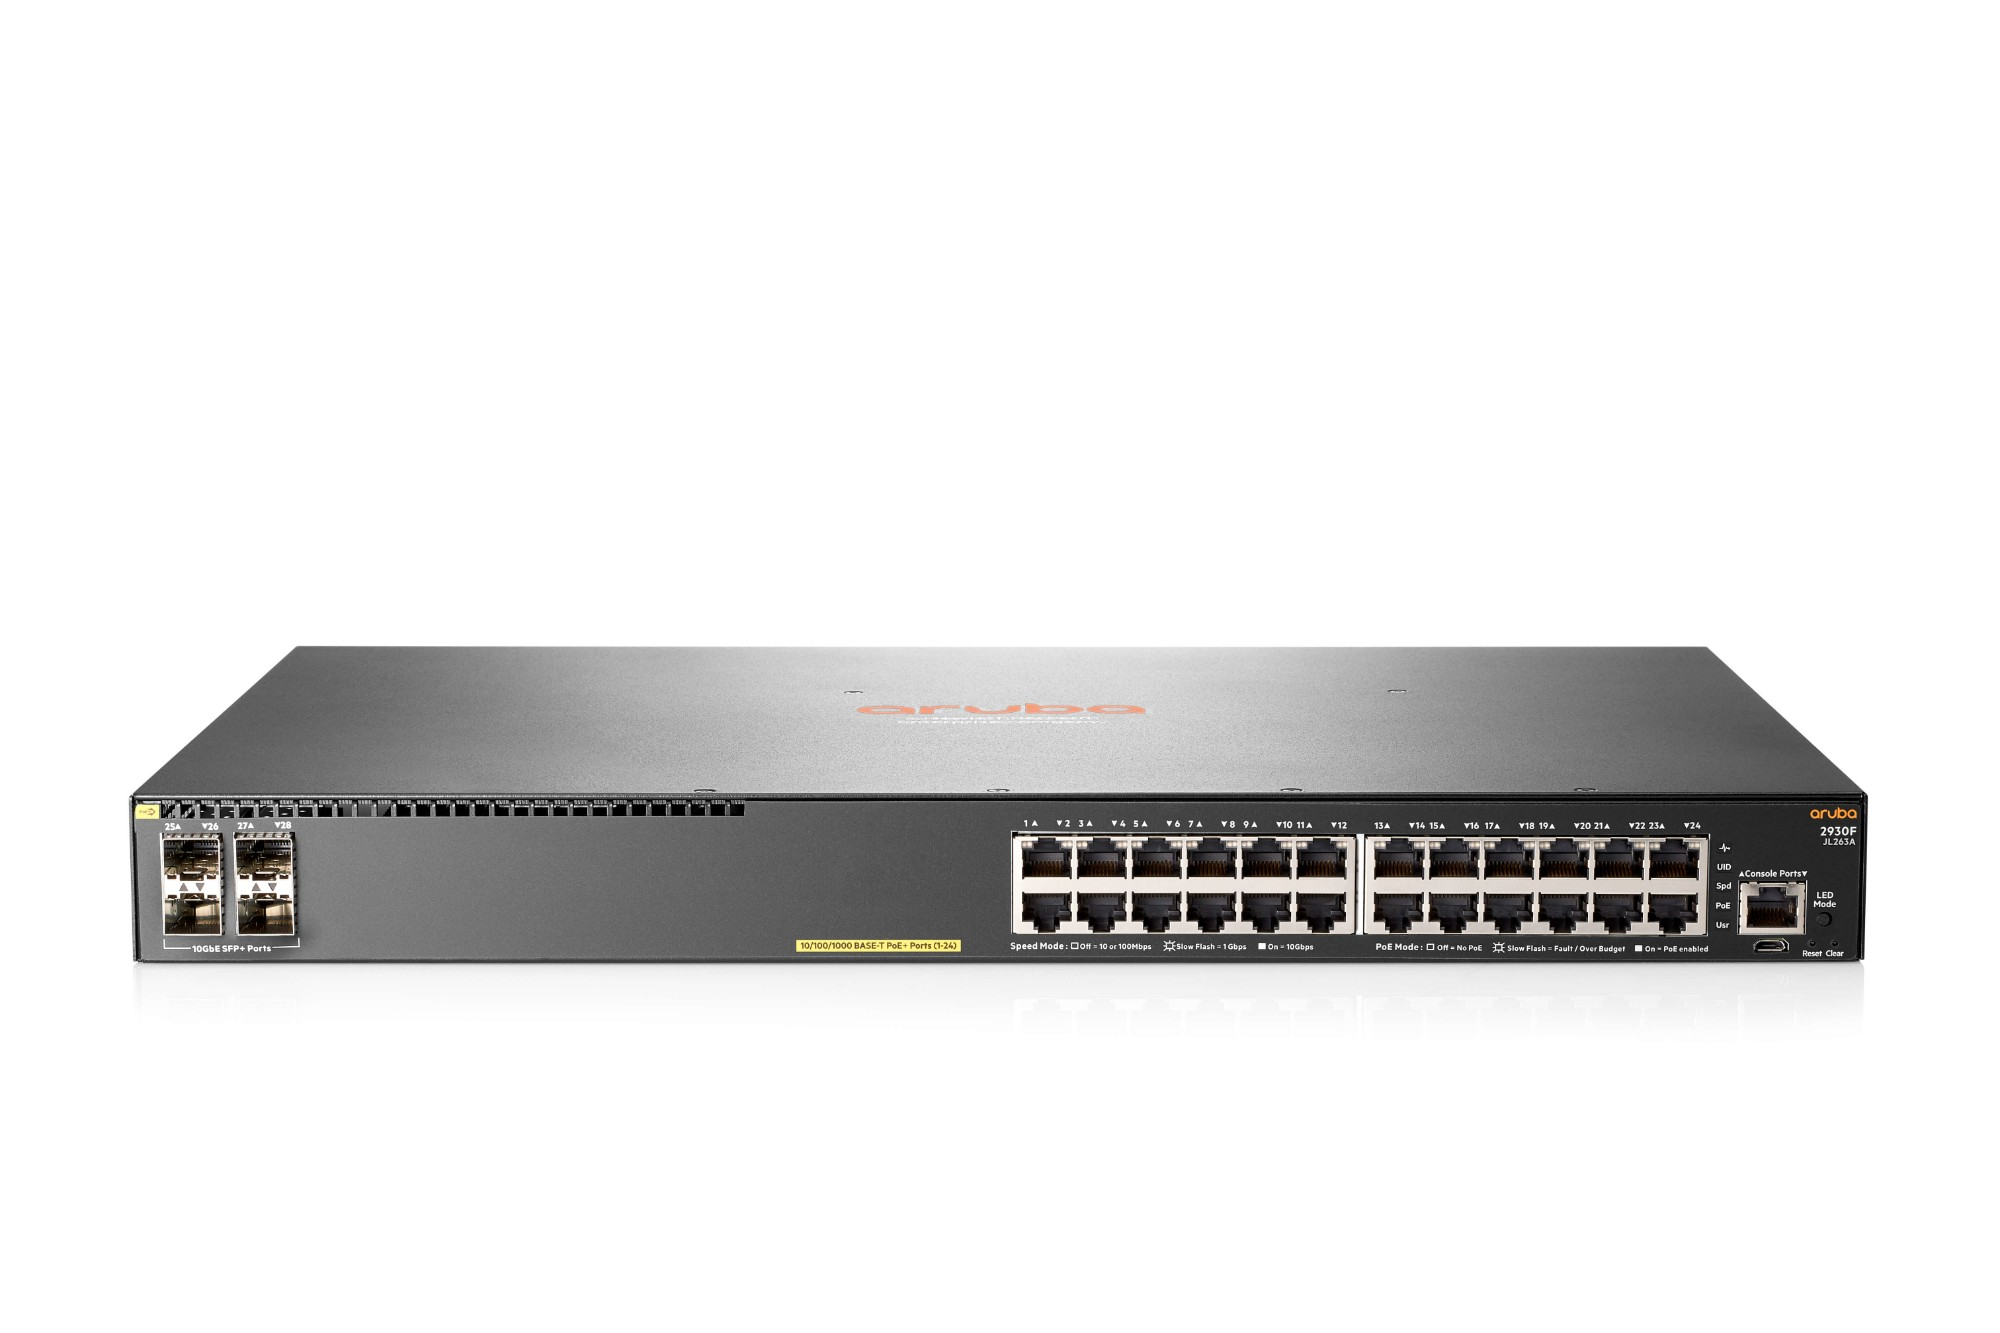 Hewlett Packard Enterprise Aruba 2930F 24G PoE+ 4SFP+ TAA Managed network switch L3 Gigabit Ethernet (10/100/1000) Power over Ethernet (PoE) 1U Grey